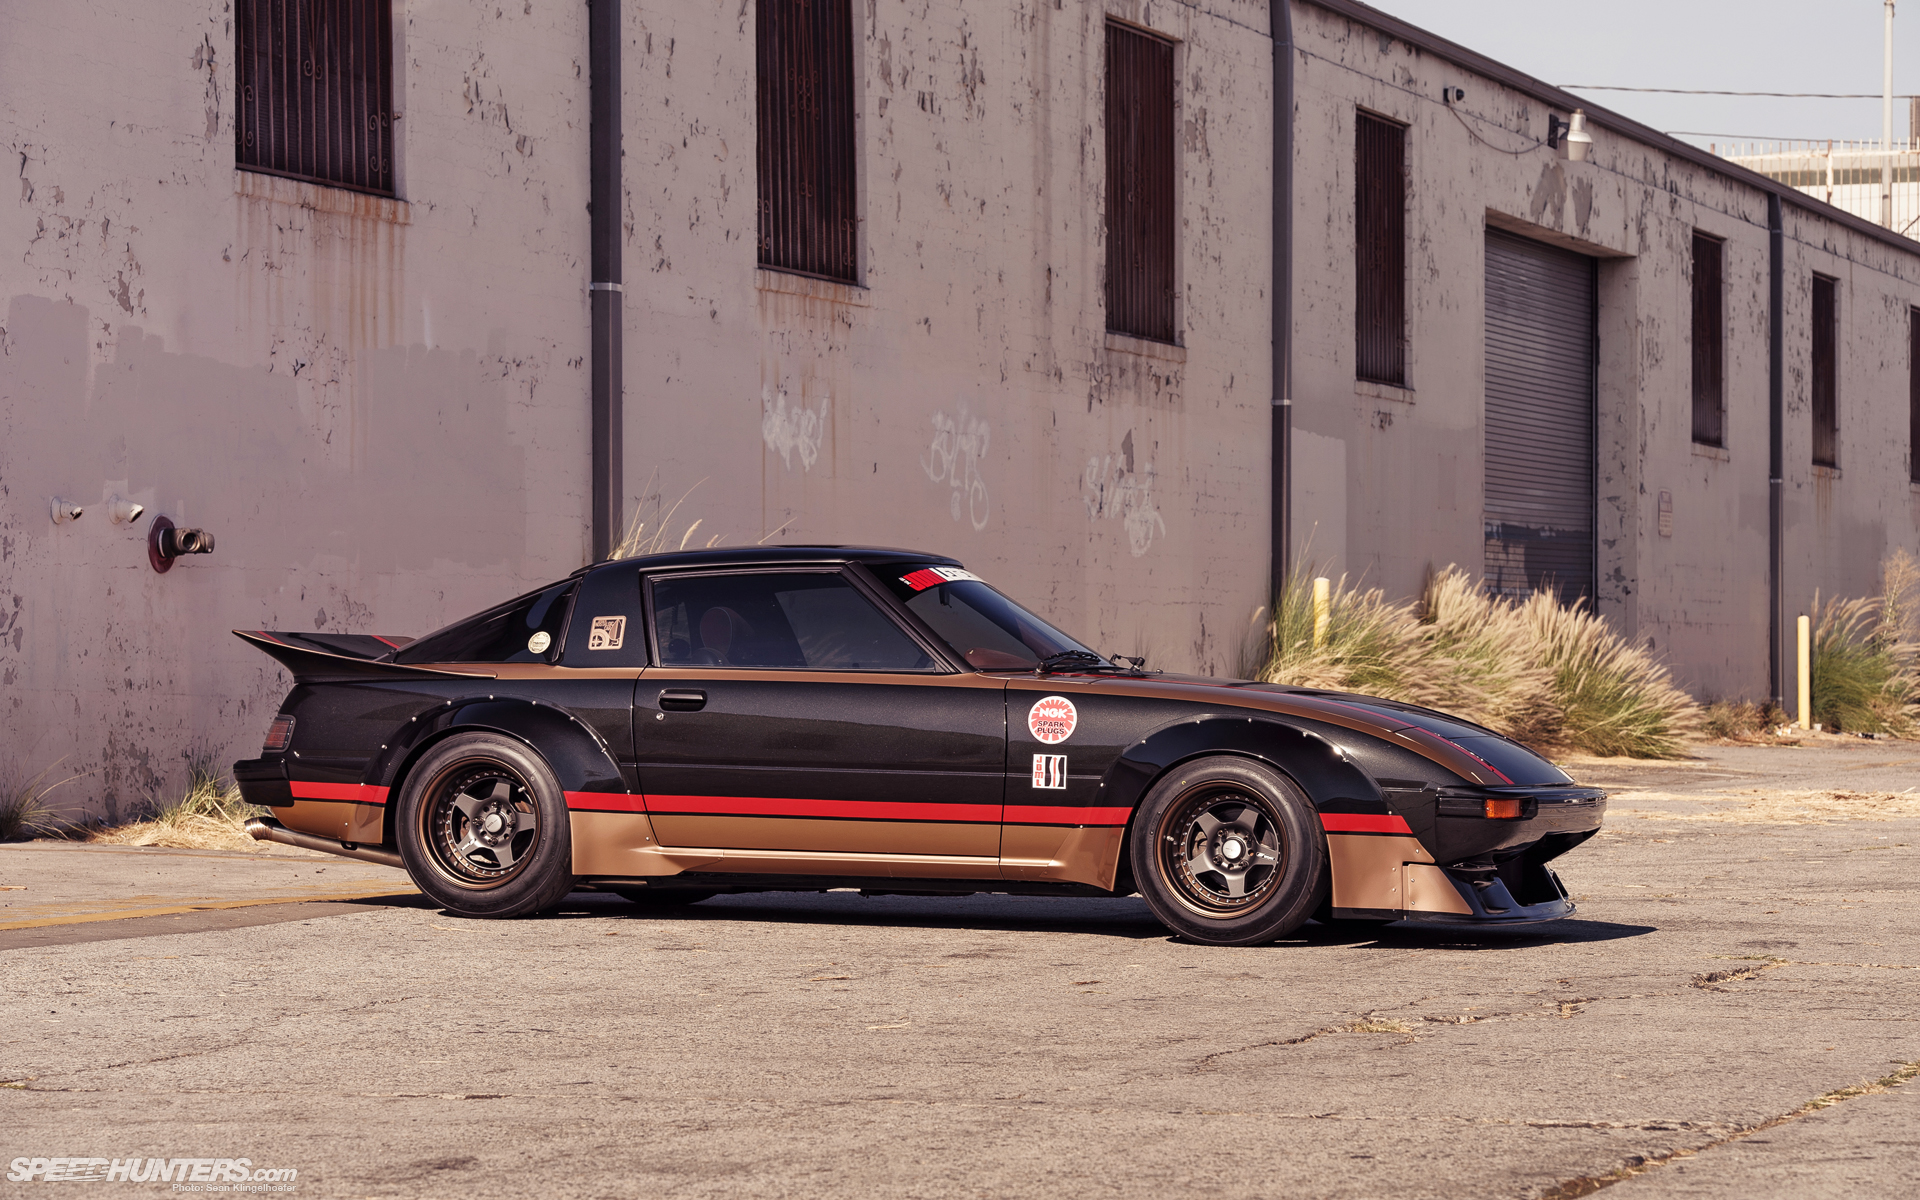 Mazda Rx 7 2017 >> If You Build It, We Will Come: Jdm Legends Rx-7 - Speedhunters